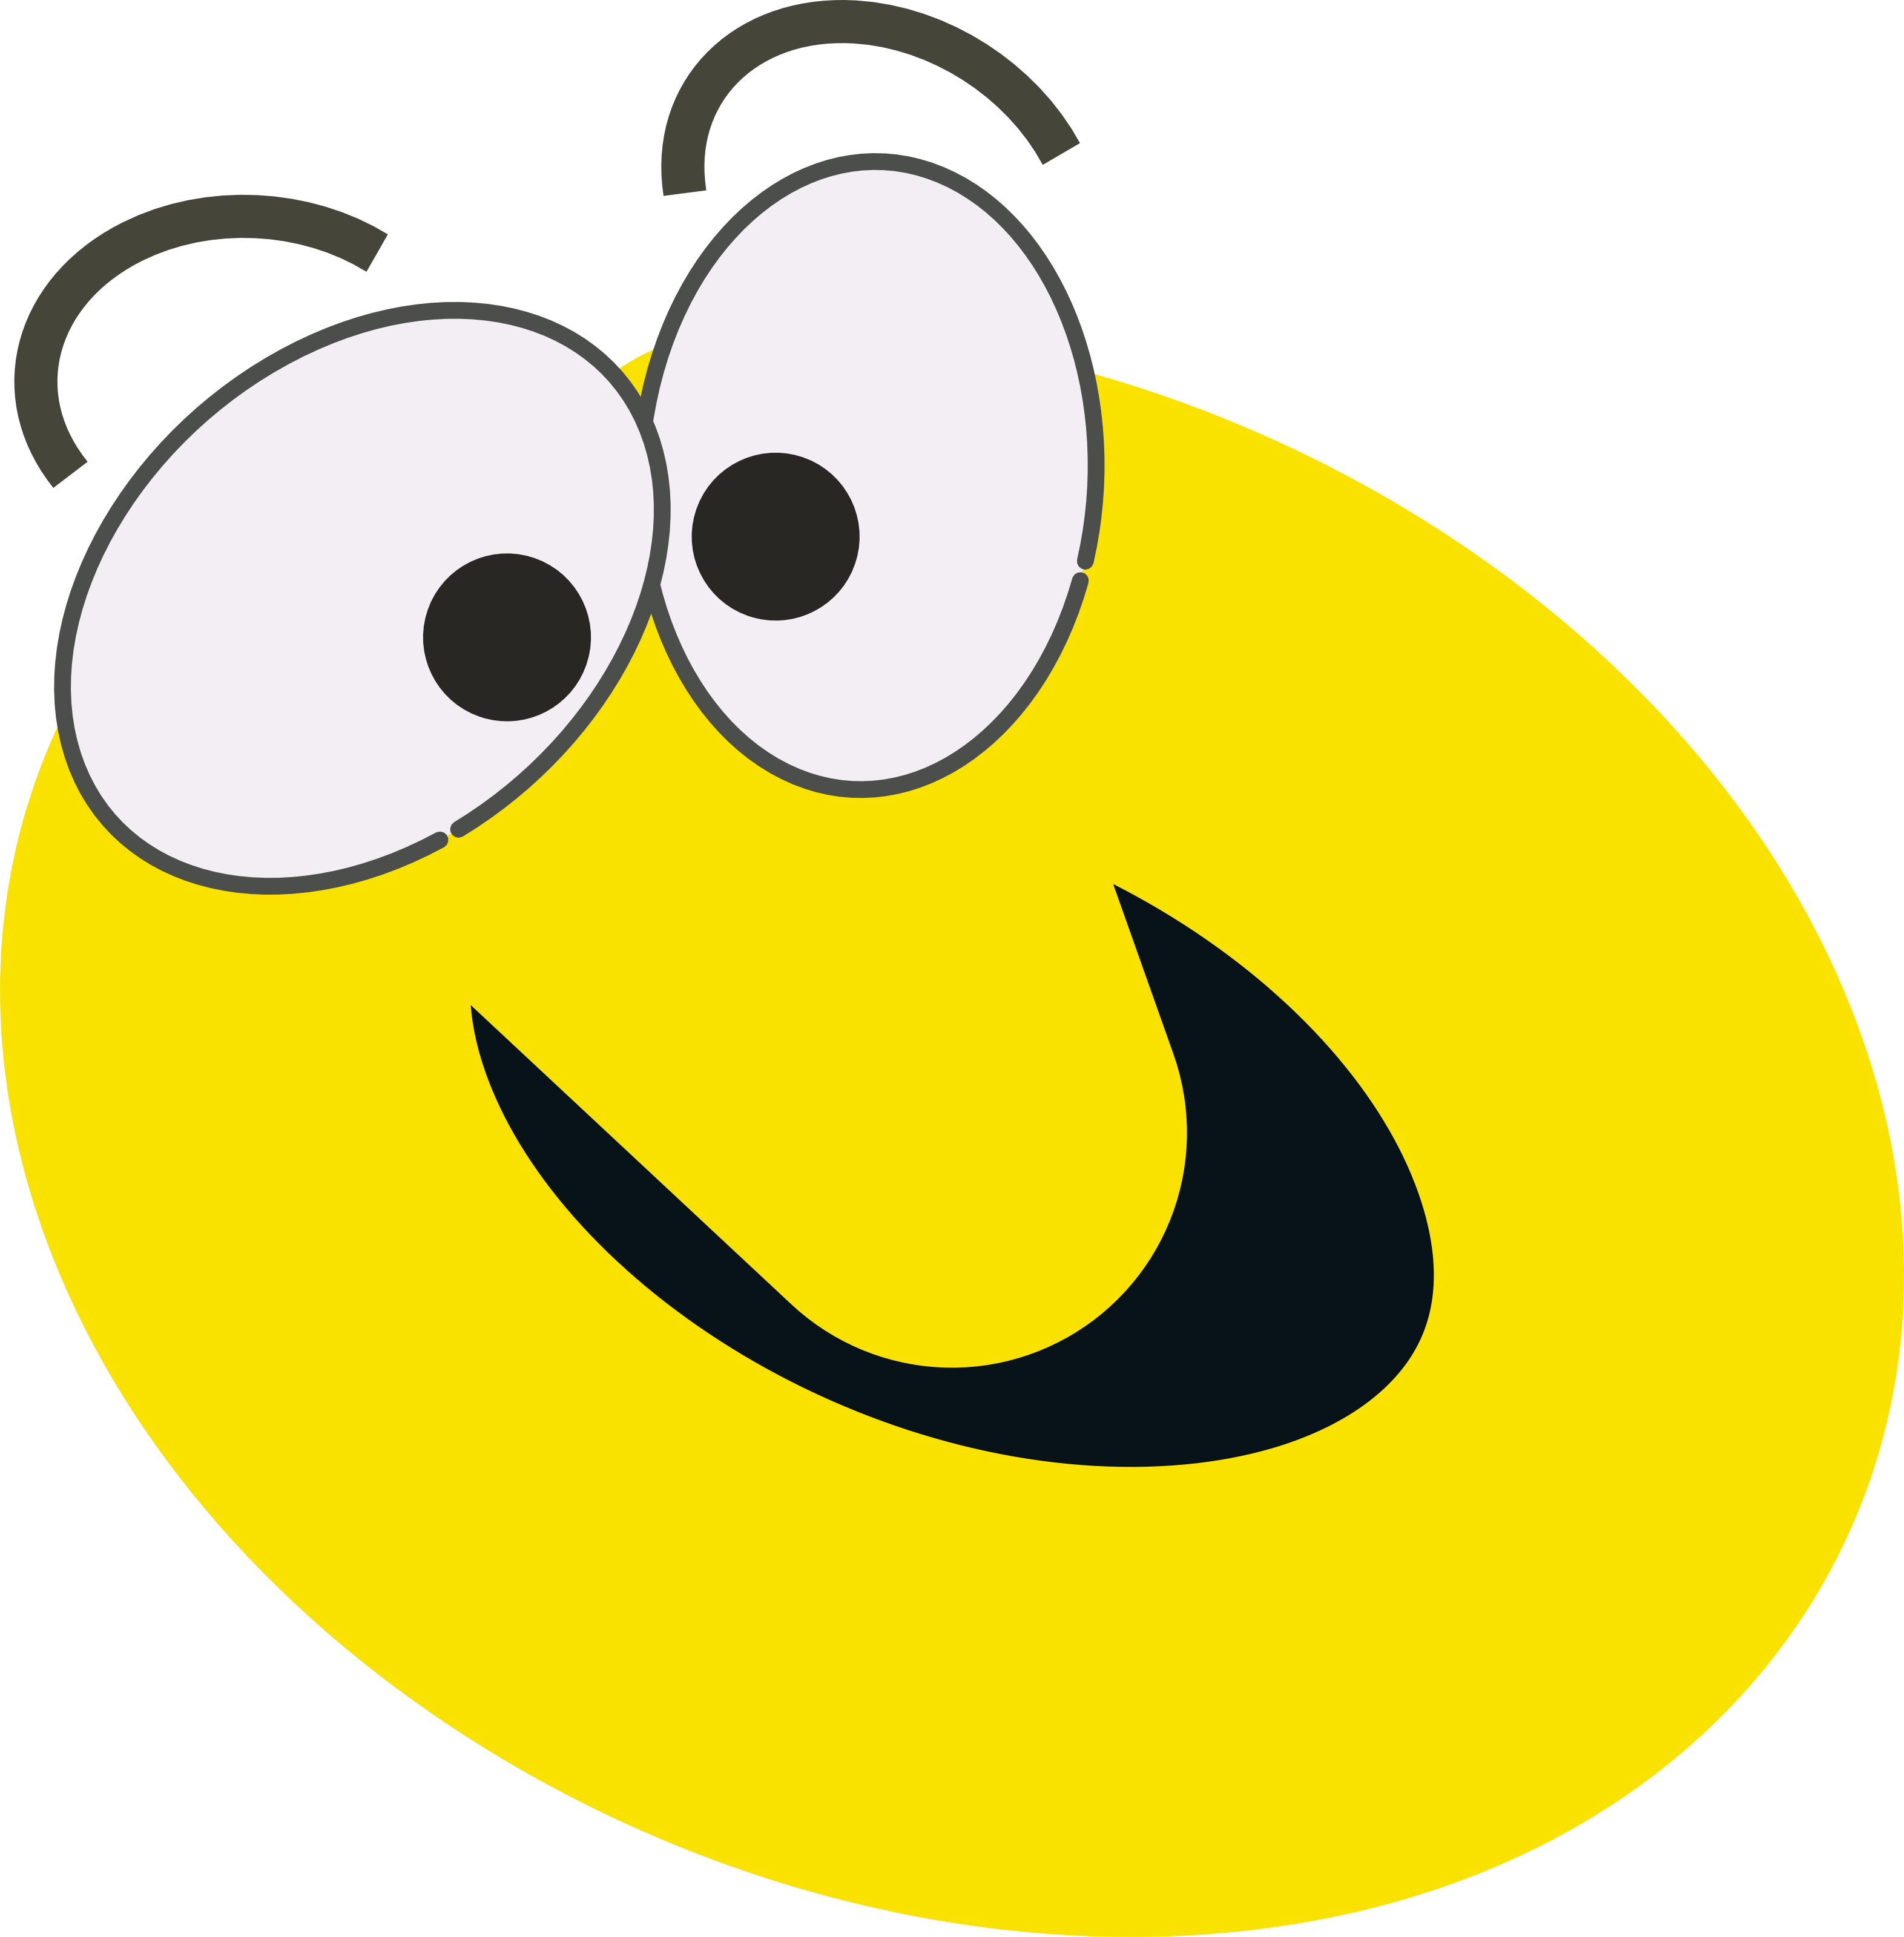 Free images of a. Cookie clipart smiley face